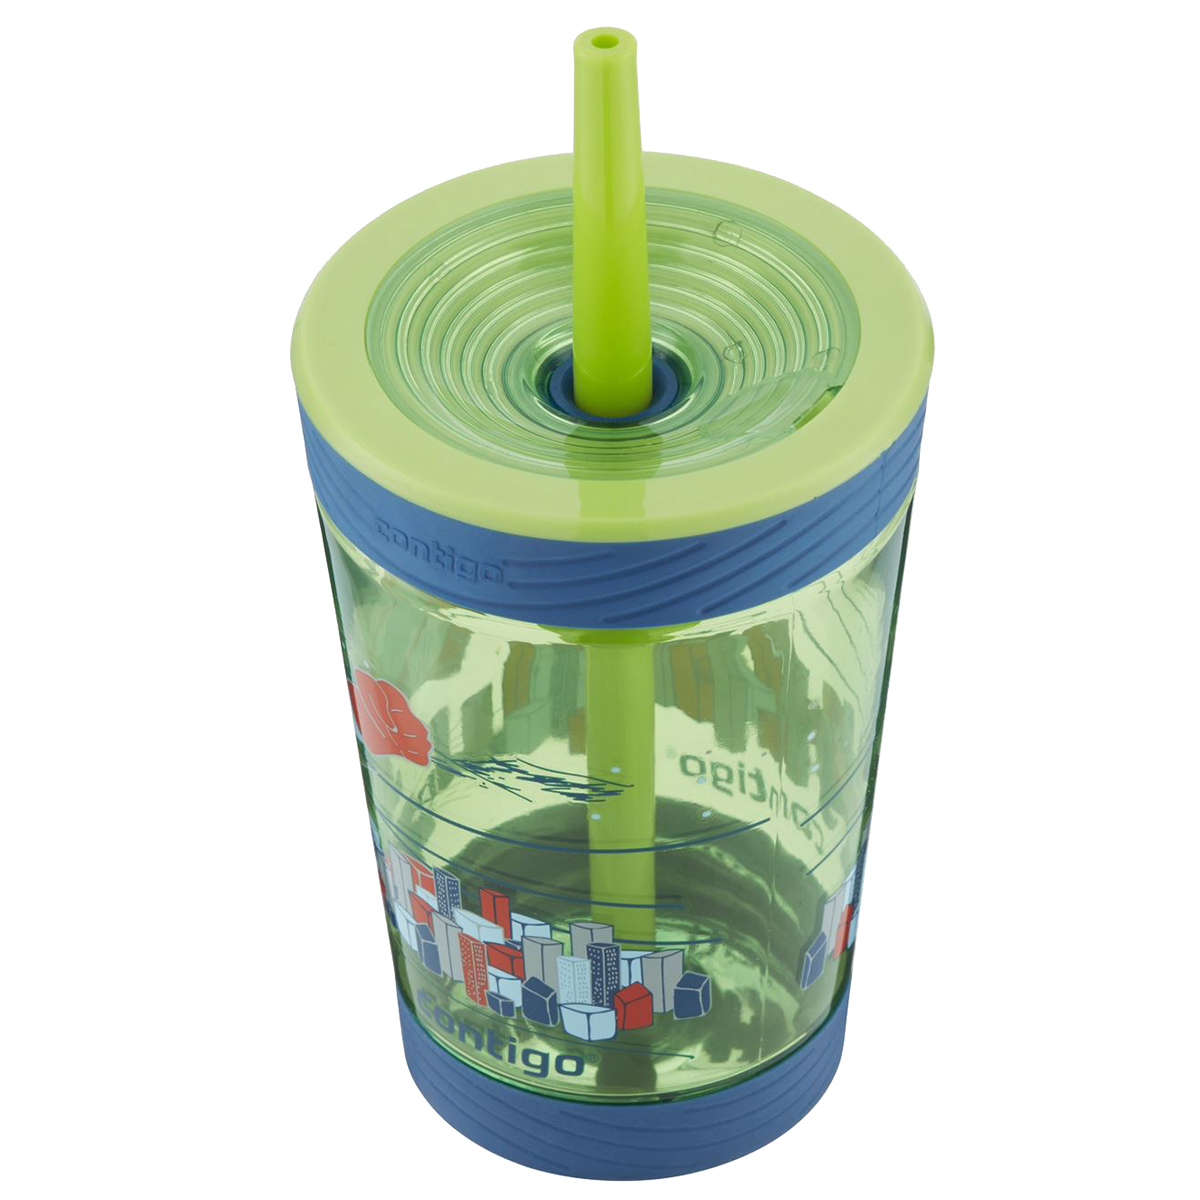 Contigo-14-oz-Kid-039-s-Spill-Proof-Sippy-Cup-Tumbler-with-Straw thumbnail 3